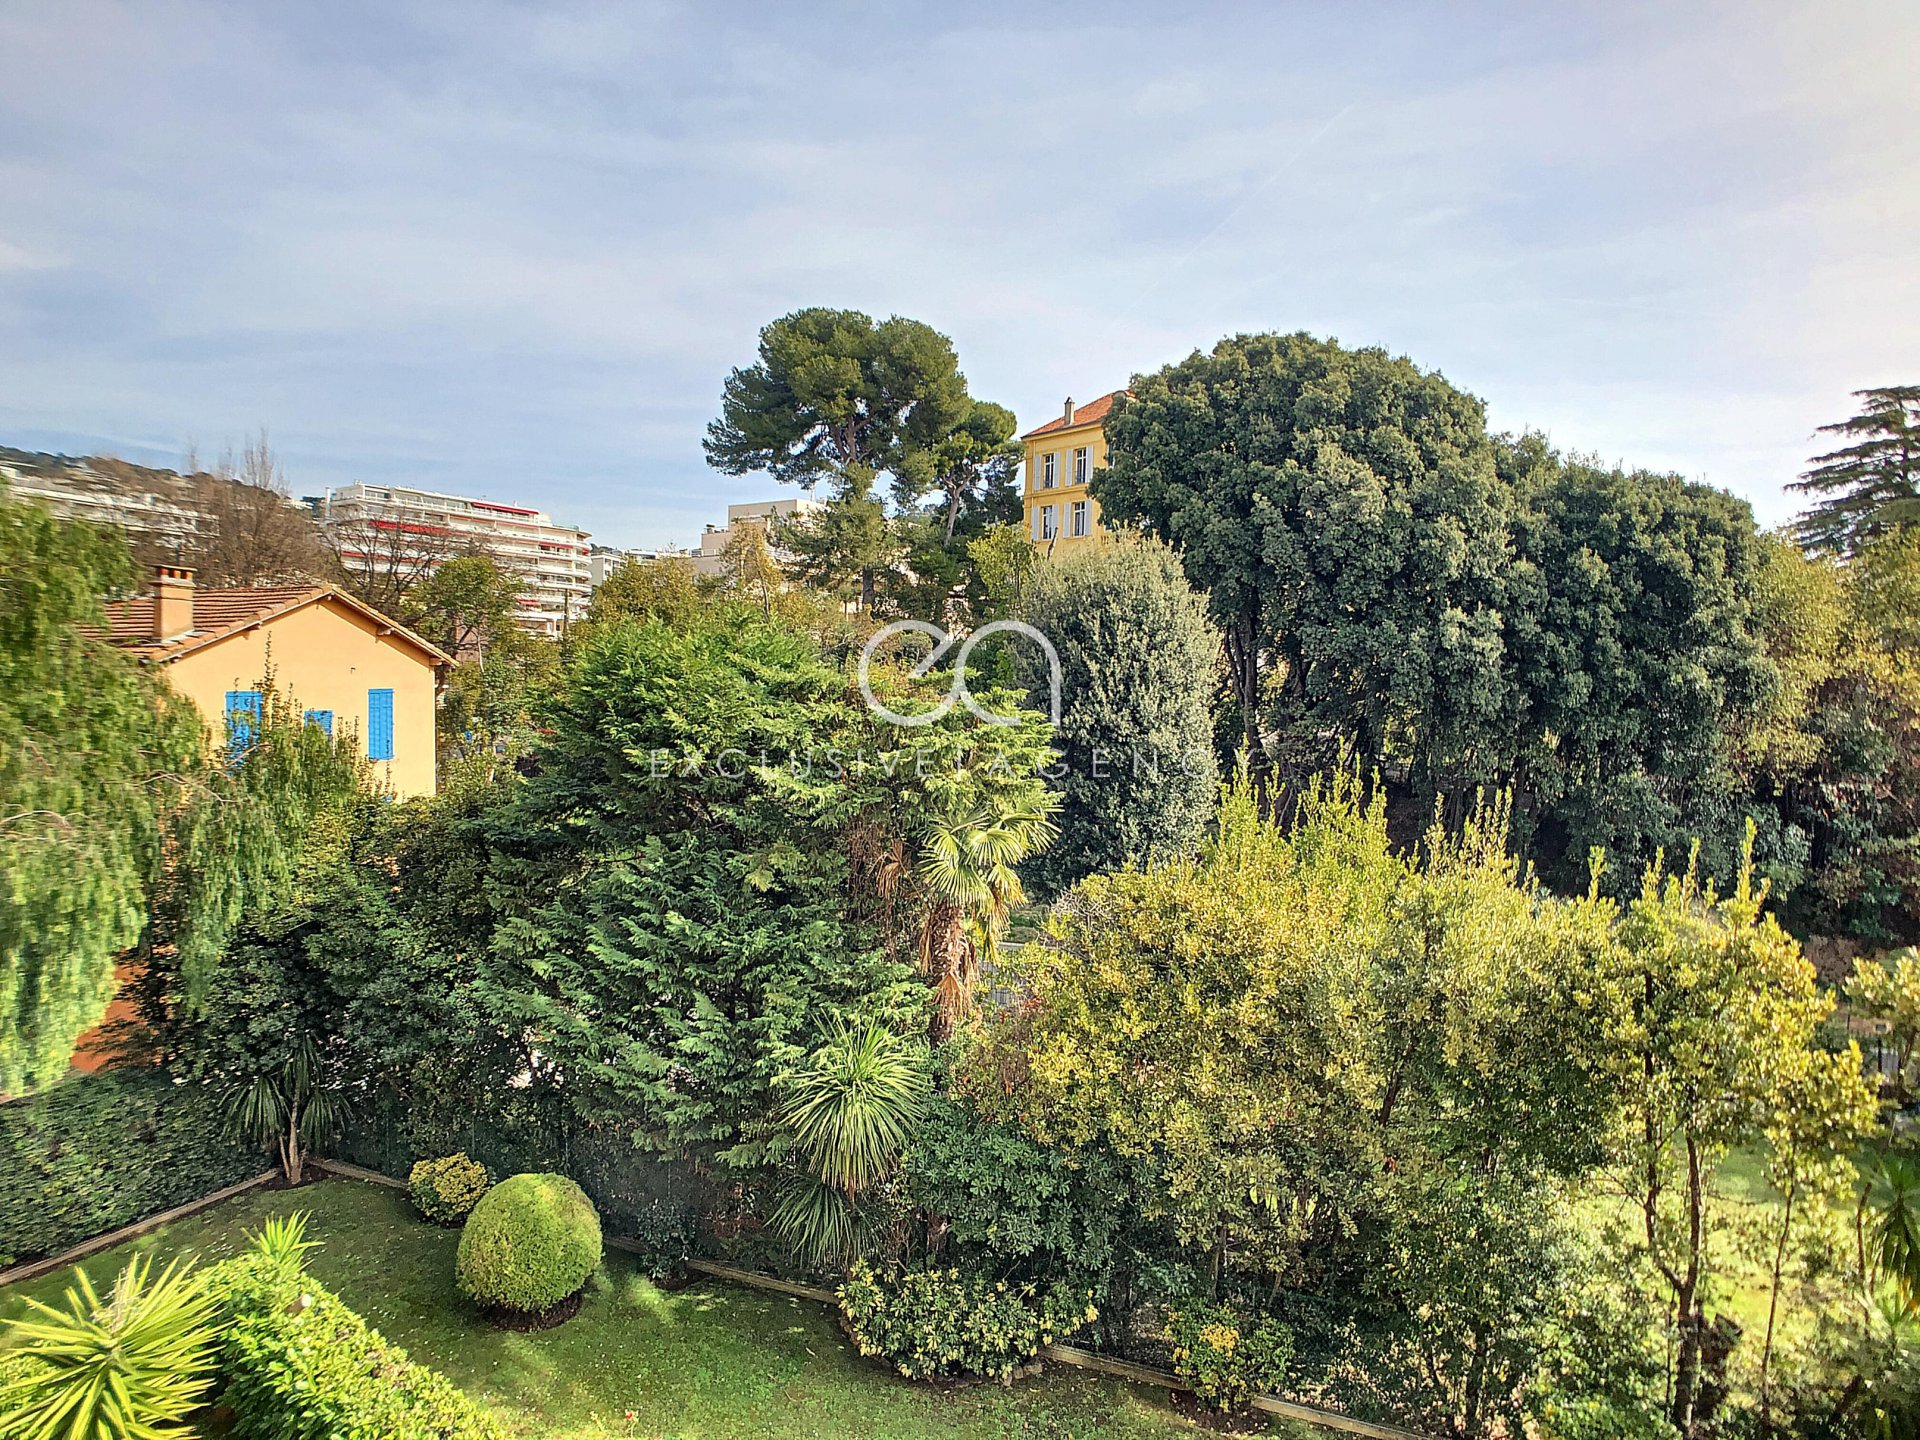 SEASONNAL RENTAL Cannes city center 50sqm 1-bedroom apartment with terrace for 1 to 2 persons.